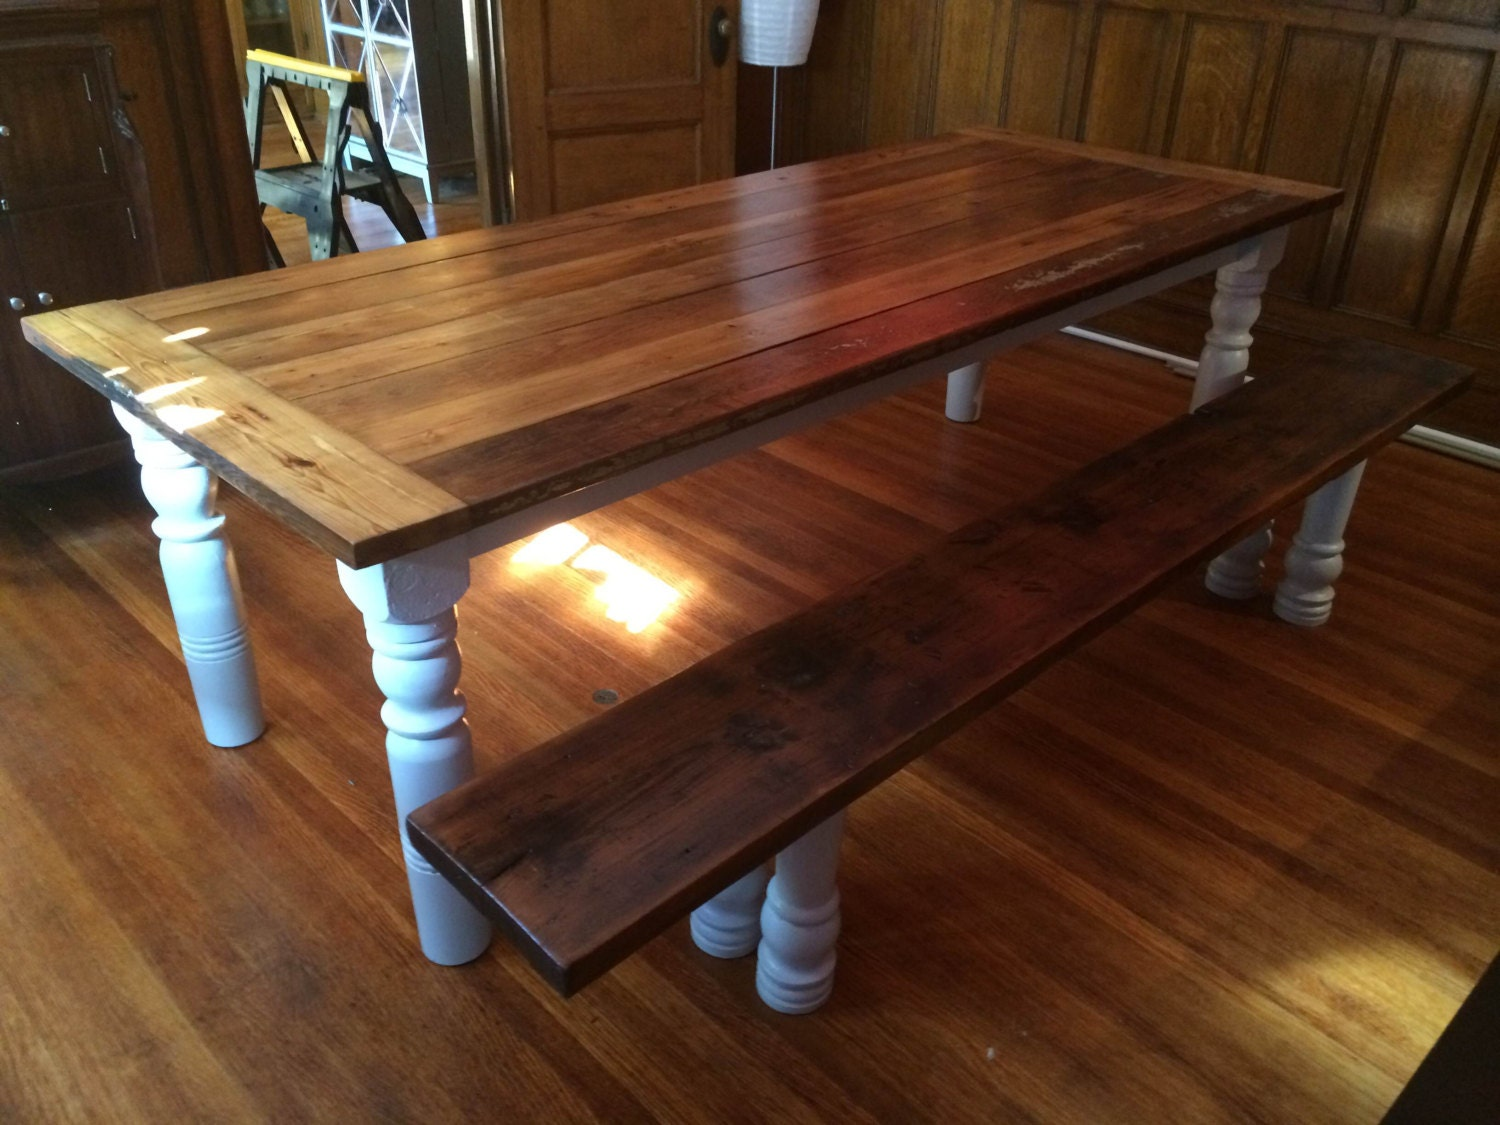 8 foot long farm table by BairdWoodWorks on Etsy